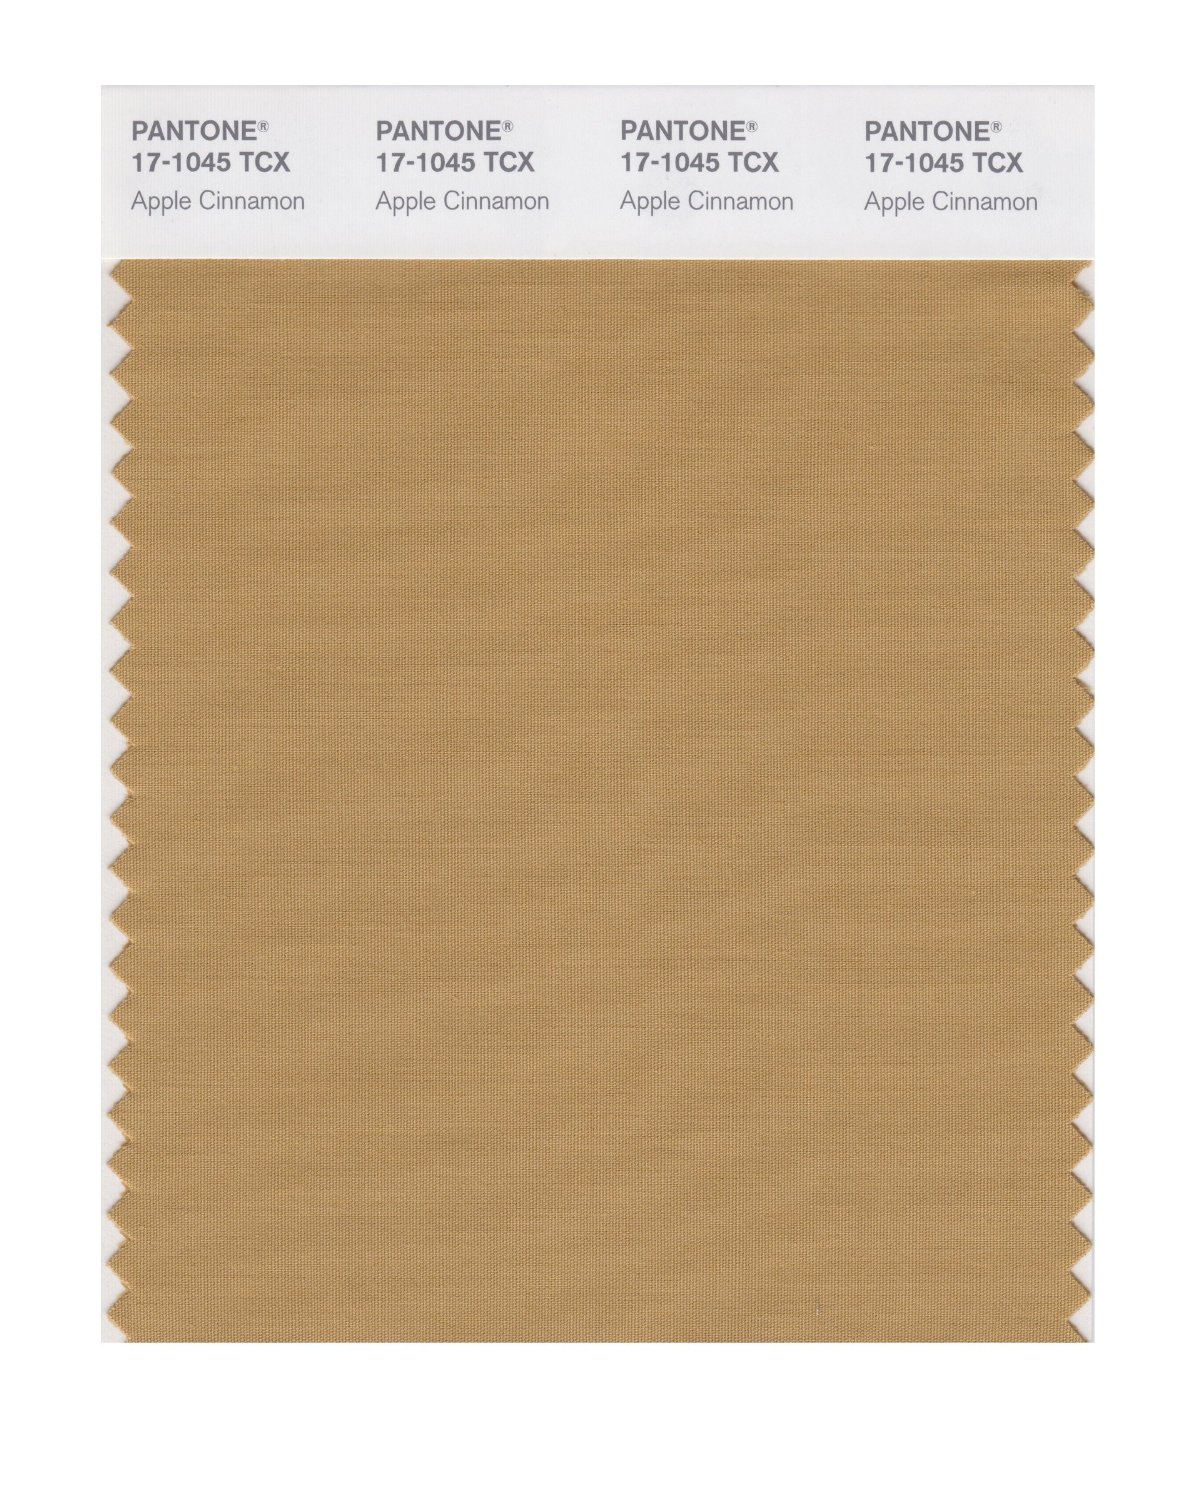 Pantone Smart Swatch 17-1045 Apple Cinnamon